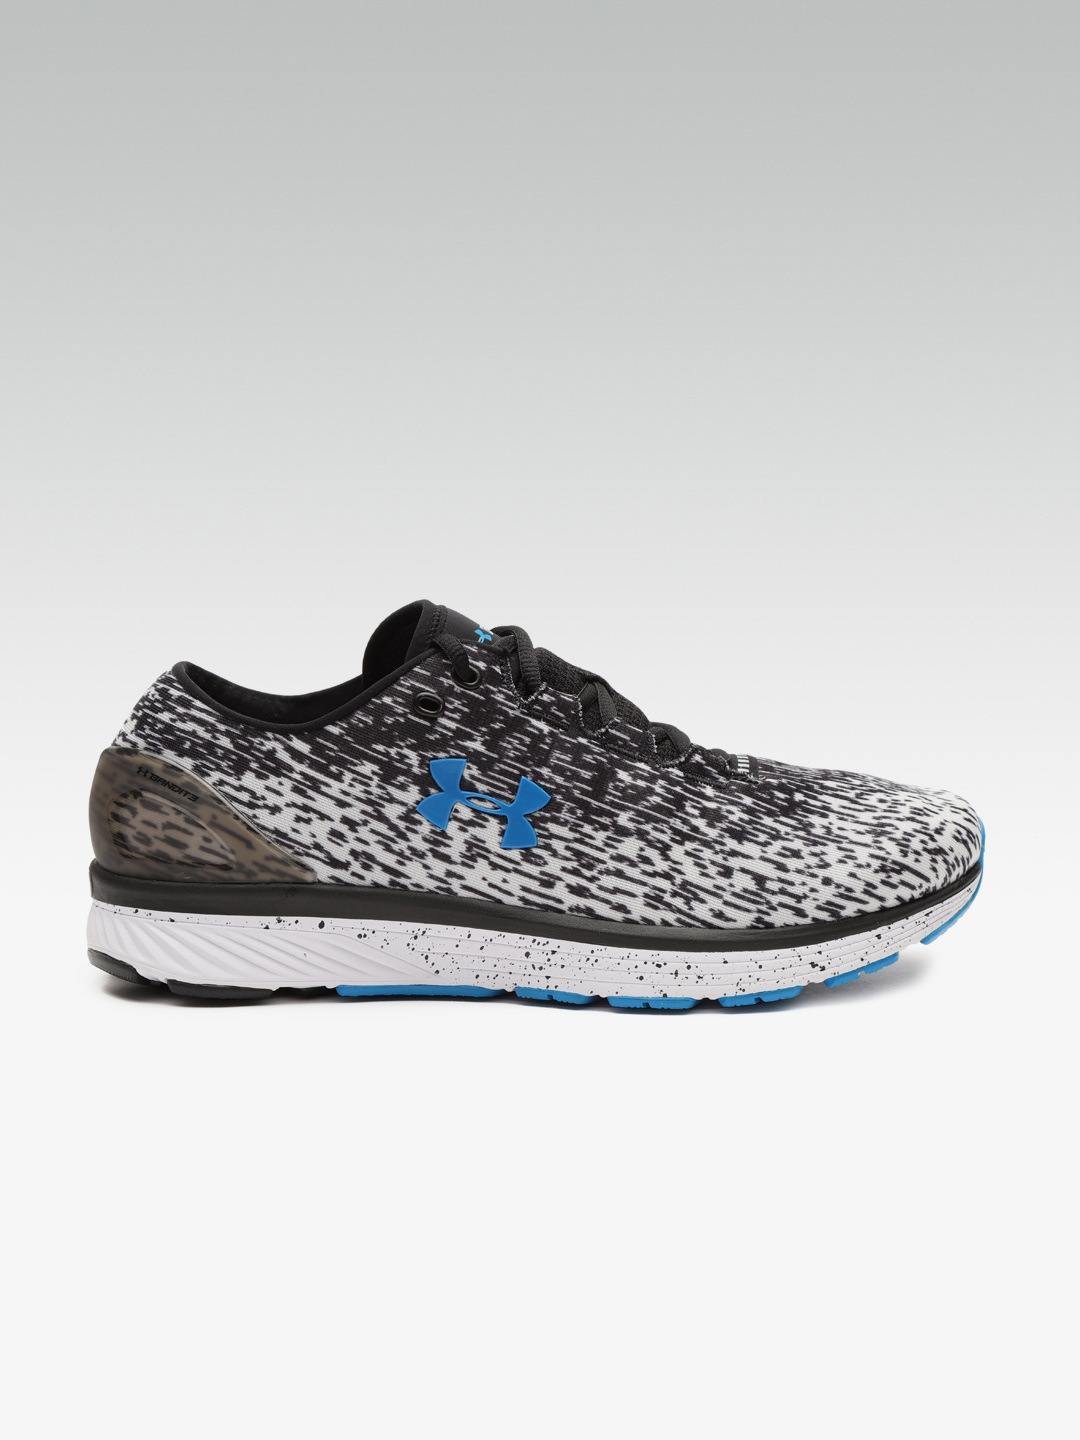 promo code a2ddd b7c2a UNDER ARMOUR Men Black & White Charged Bandit 3 Ombre Running Shoes